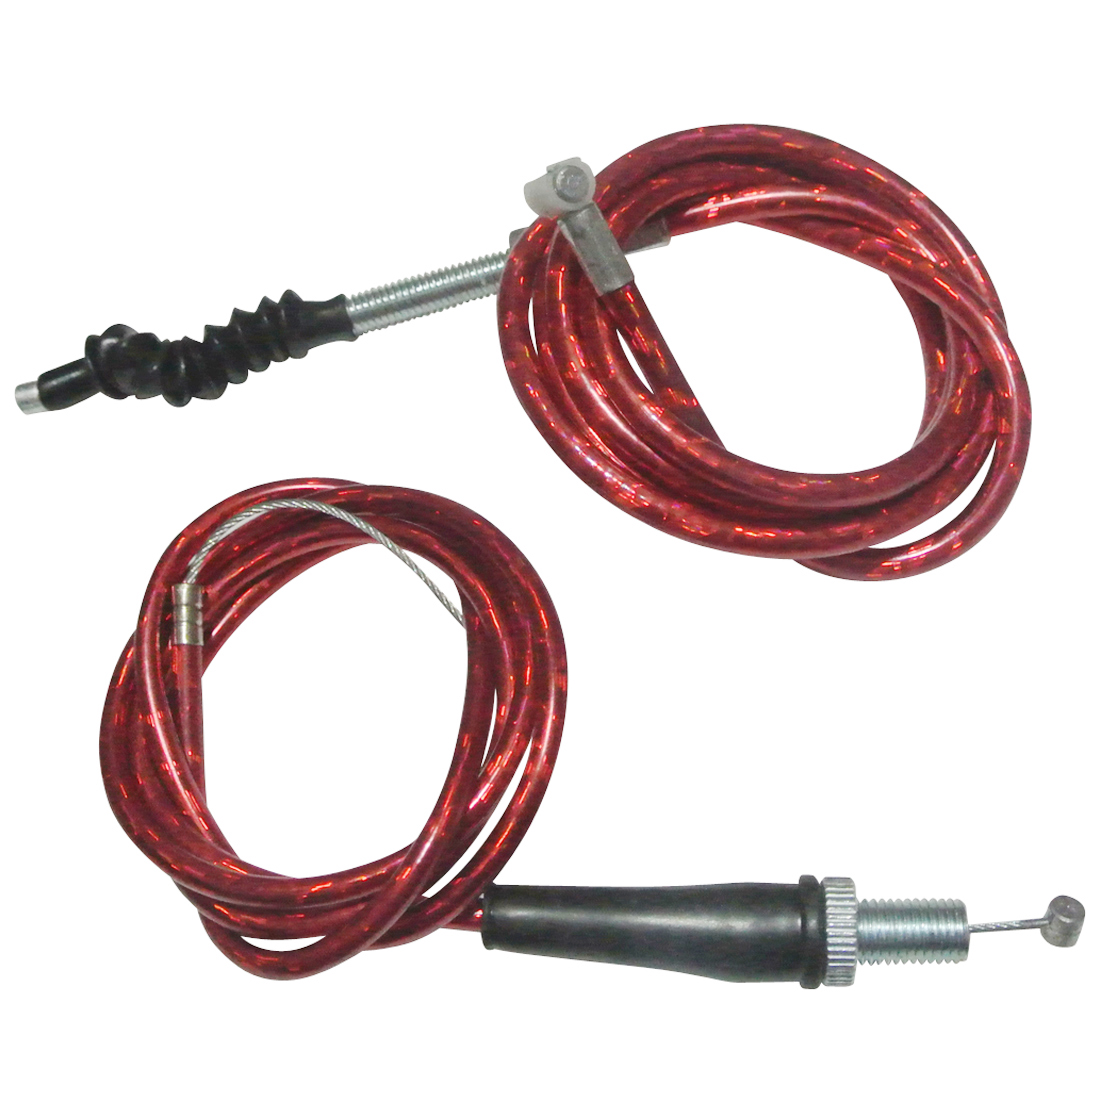 Pit Dirt Bikes Red Twist Throttle Clutch Cable For 50cc-<font><b>160cc</b></font> <font><b>Engine</b></font> Motocross image